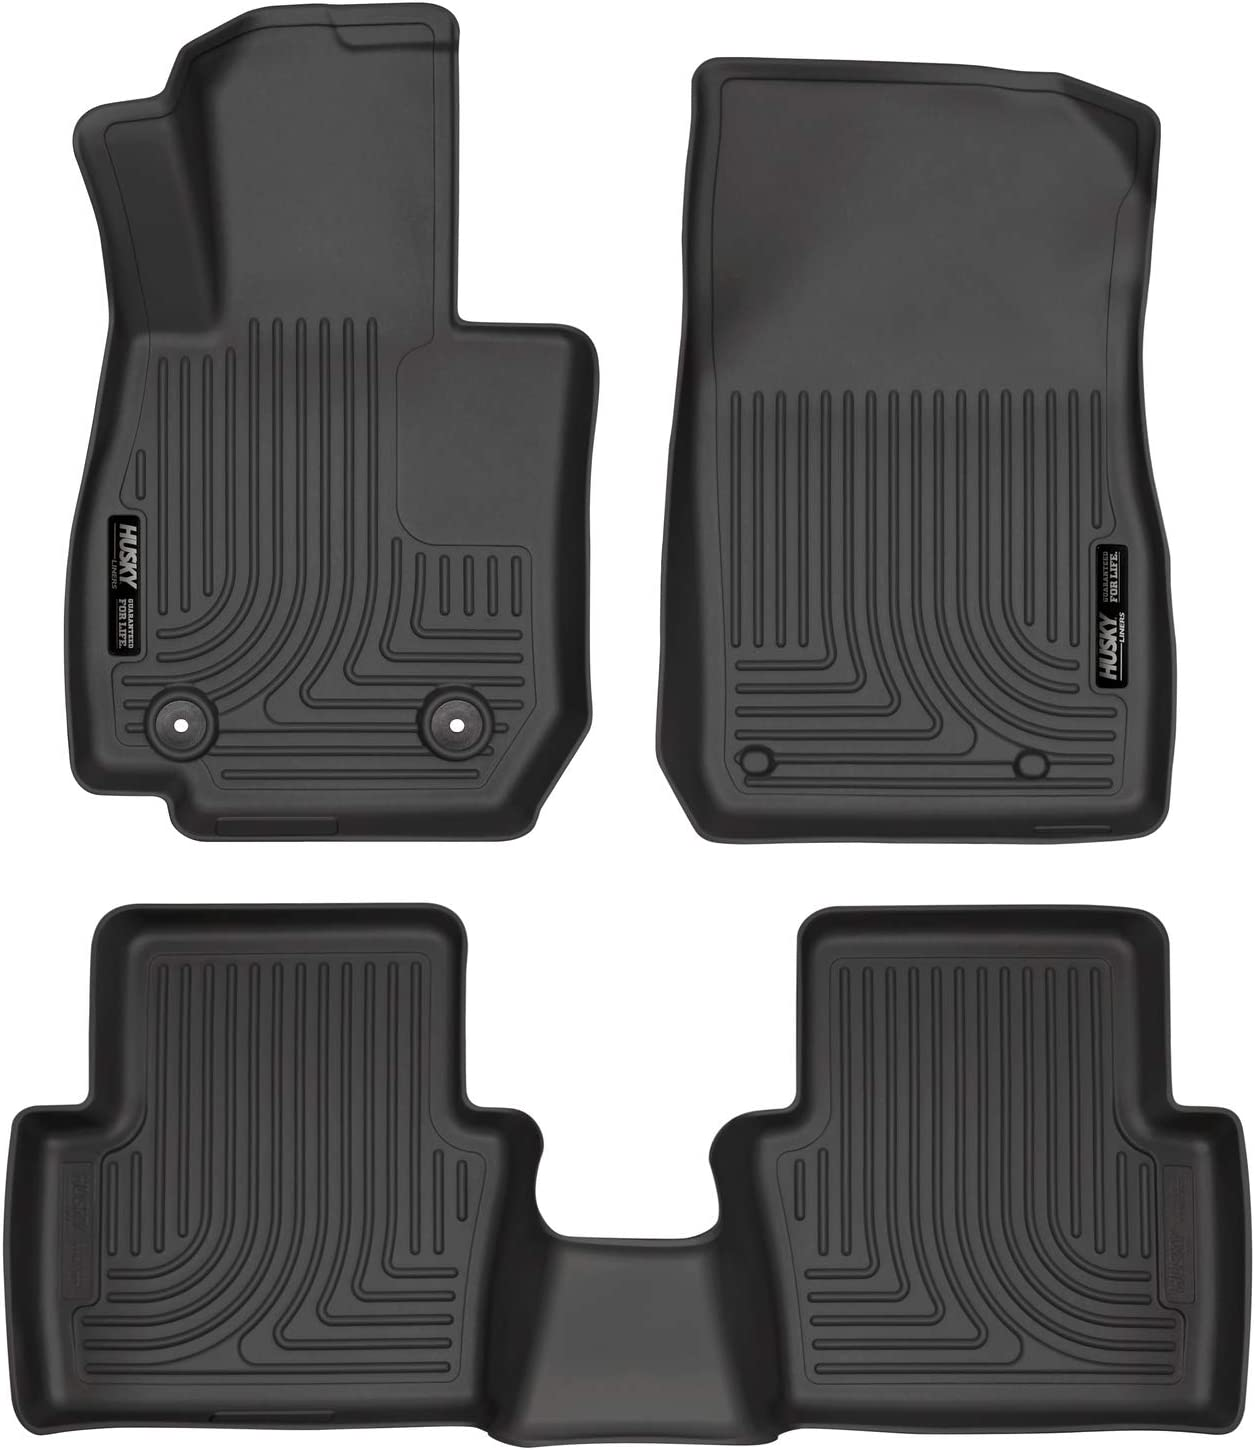 Passenger /& Rear Floor Mats Custom-Fit for BMW 7 Series ACTIVEHYBRID 2018-2019 GGBAILEY Charcoal Driver